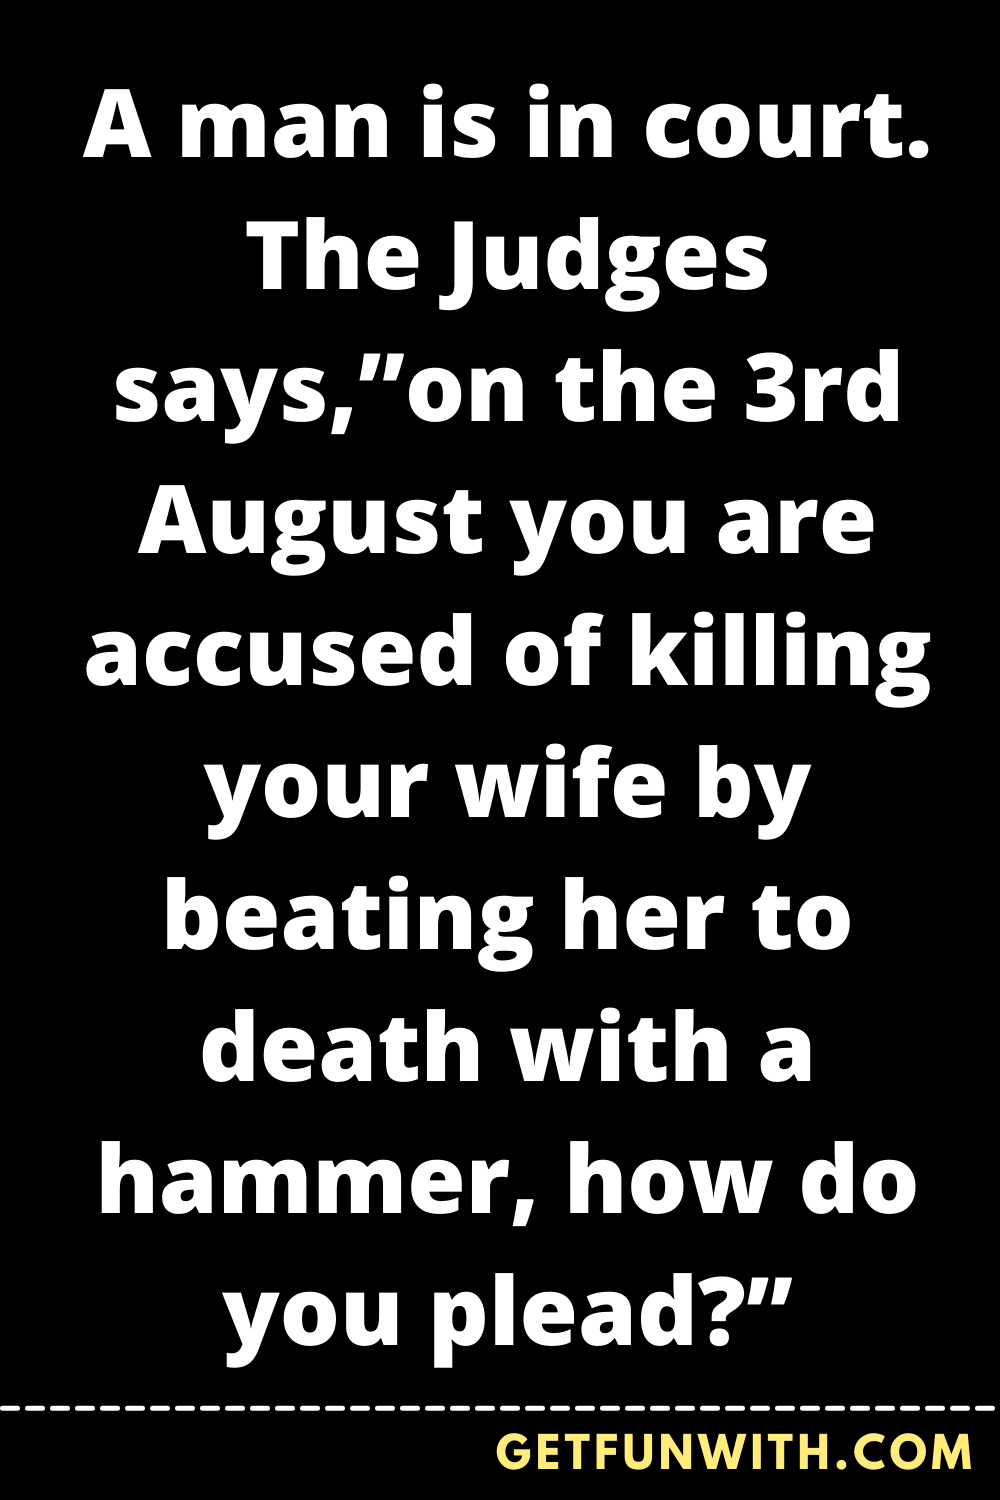 """A man is in court. The Judges says,""""on the 3rd August you are accused of killing your wife by beating her to death with a hammer, how do you plead?"""""""